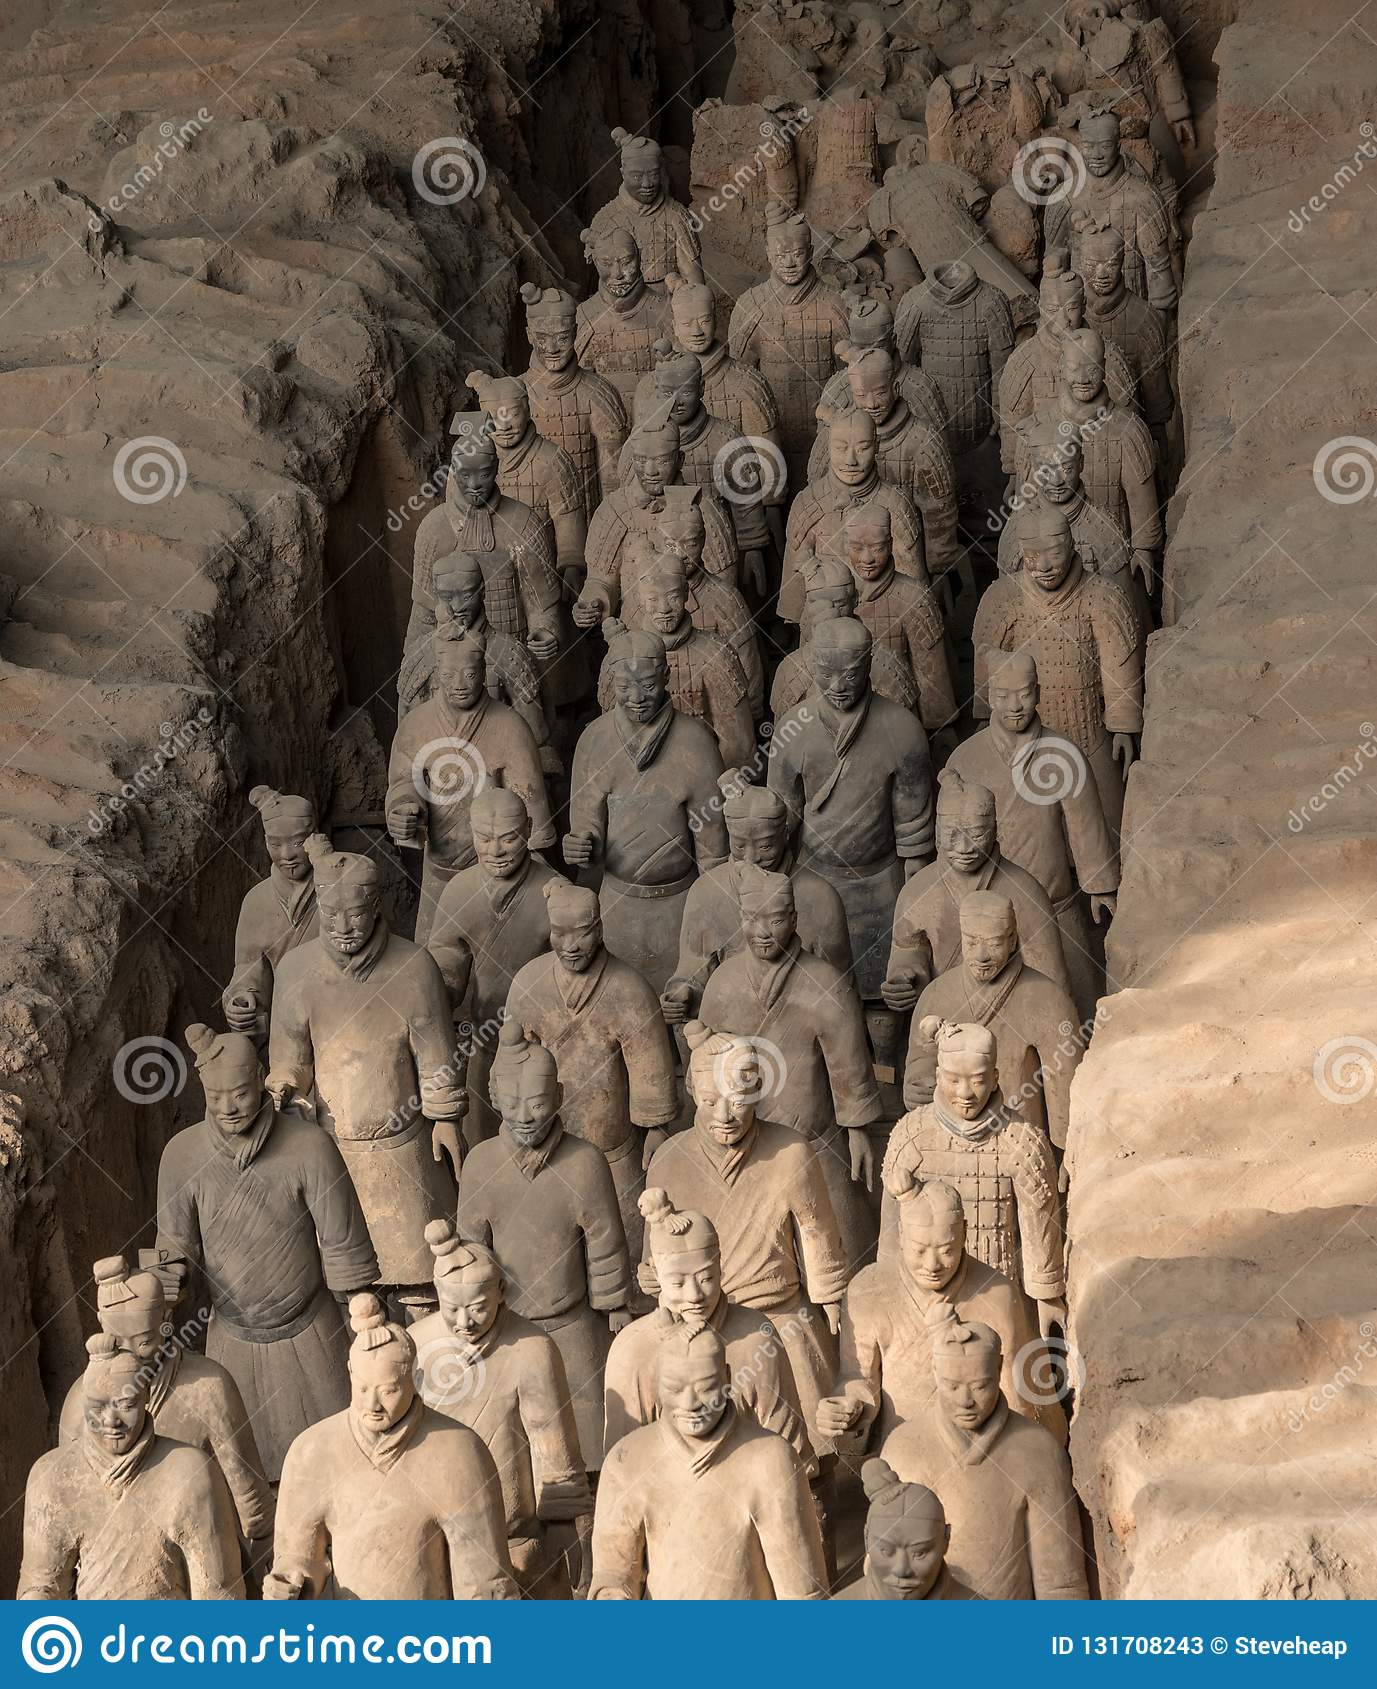 Terracotta Army warriors buried in Emperor tomb outside Xian China